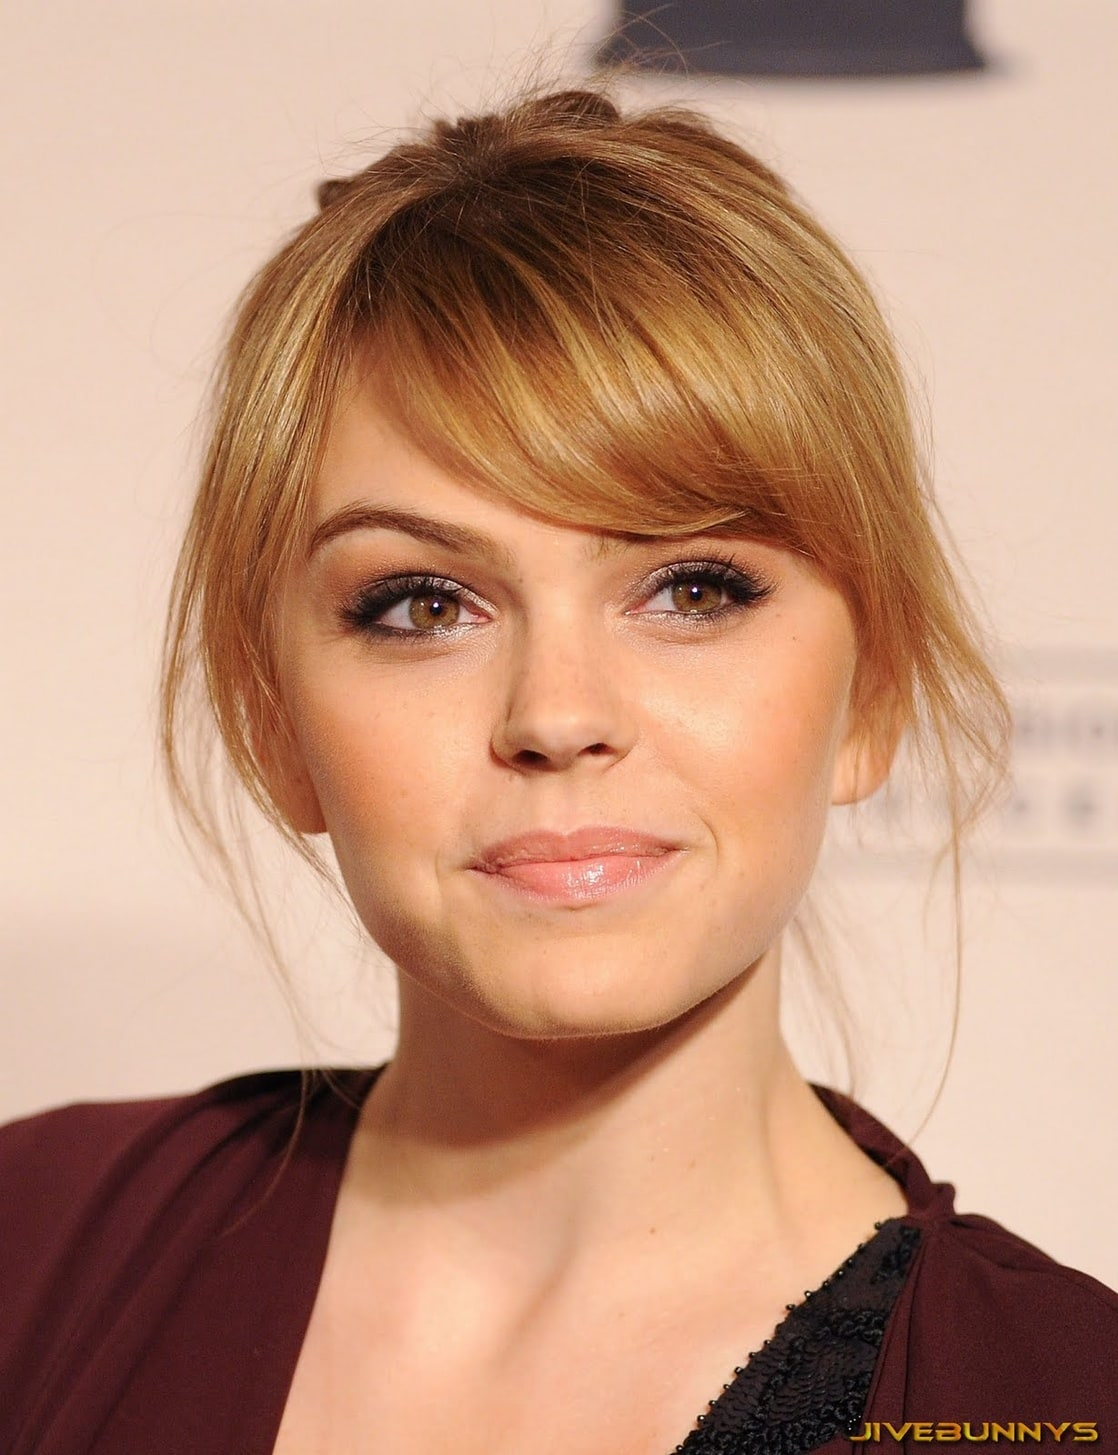 picture aimee teegarden - photo #32